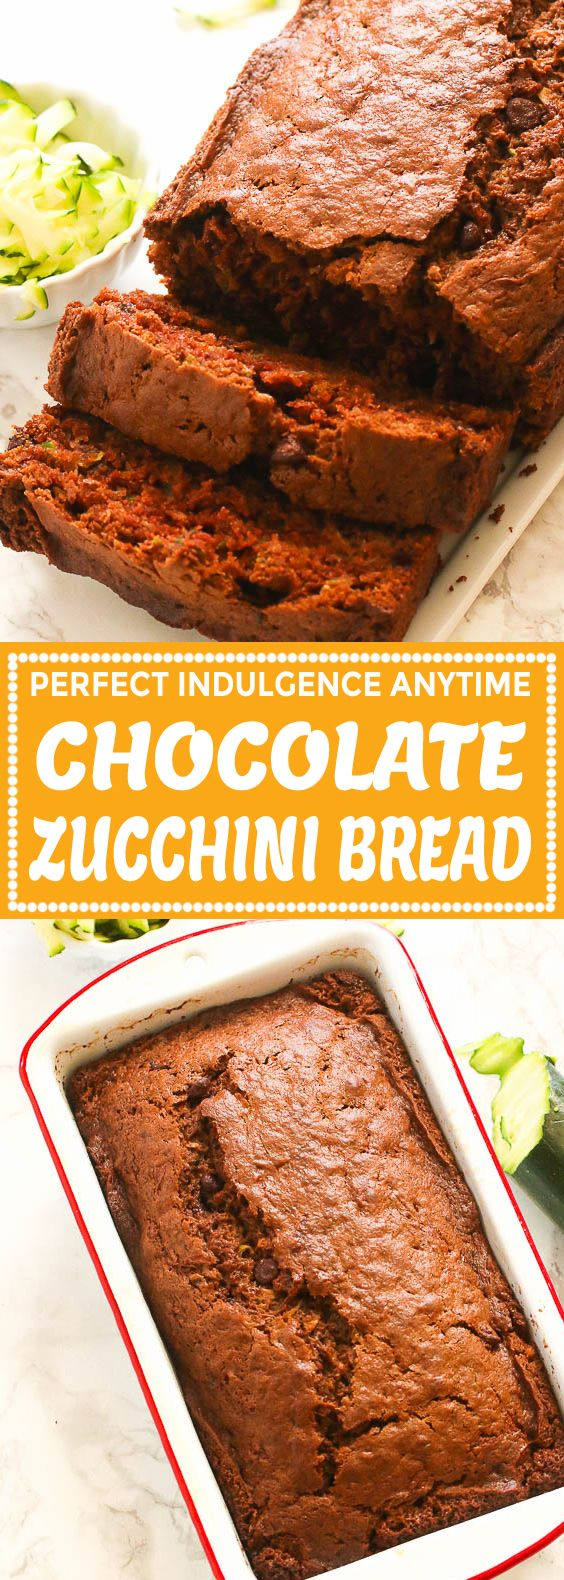 Chocolate Zucchini Bread Immaculate Bites In 2020 Chocolate Zucchini Bread Chocolate Zucchini Chocolate Bread Recipe